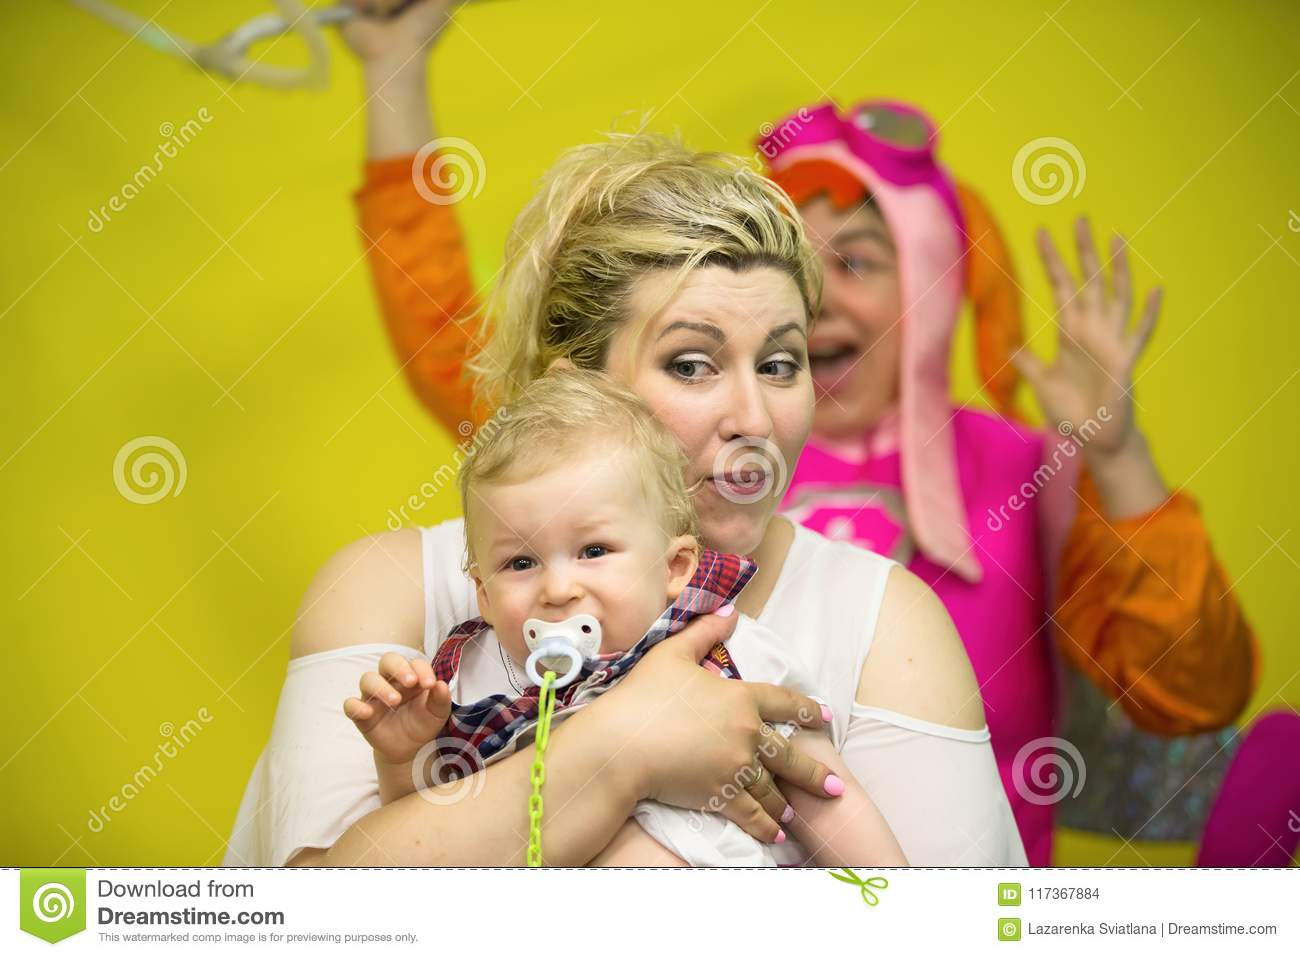 Mom with a child having fun